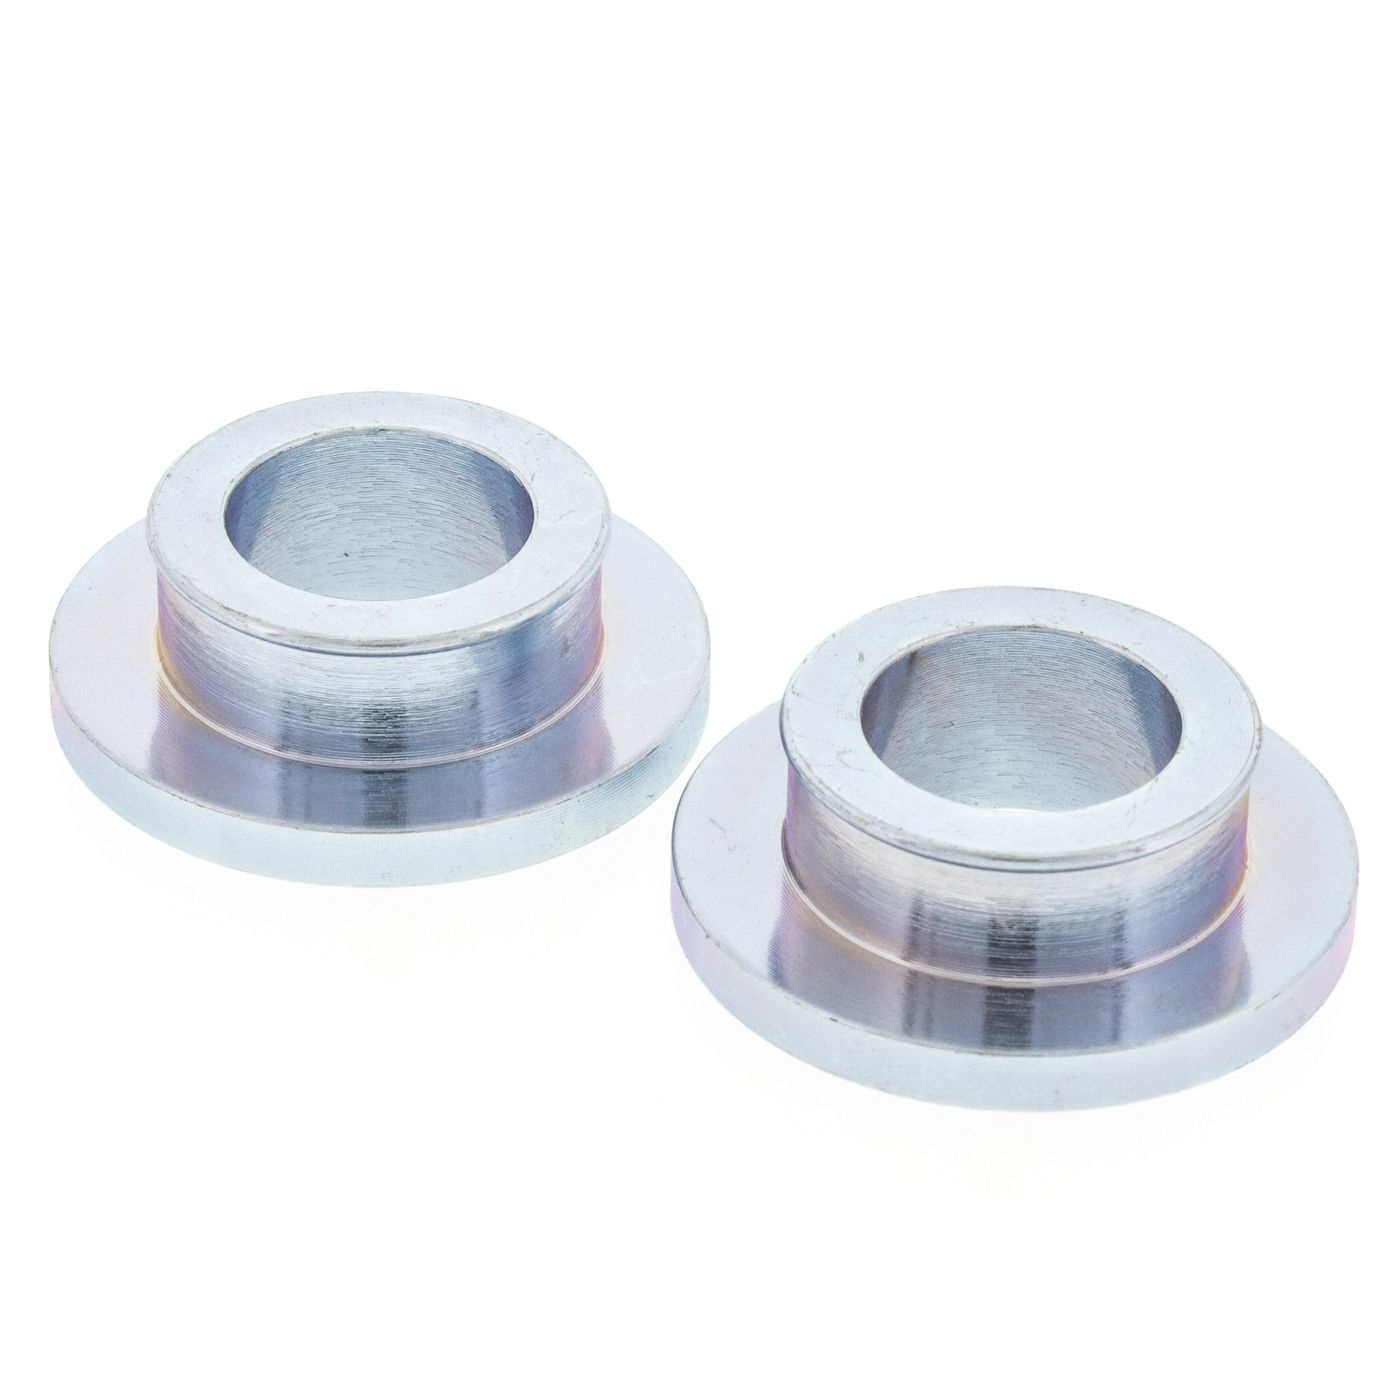 wrp rear wheel spacer kits - WRP111011 image